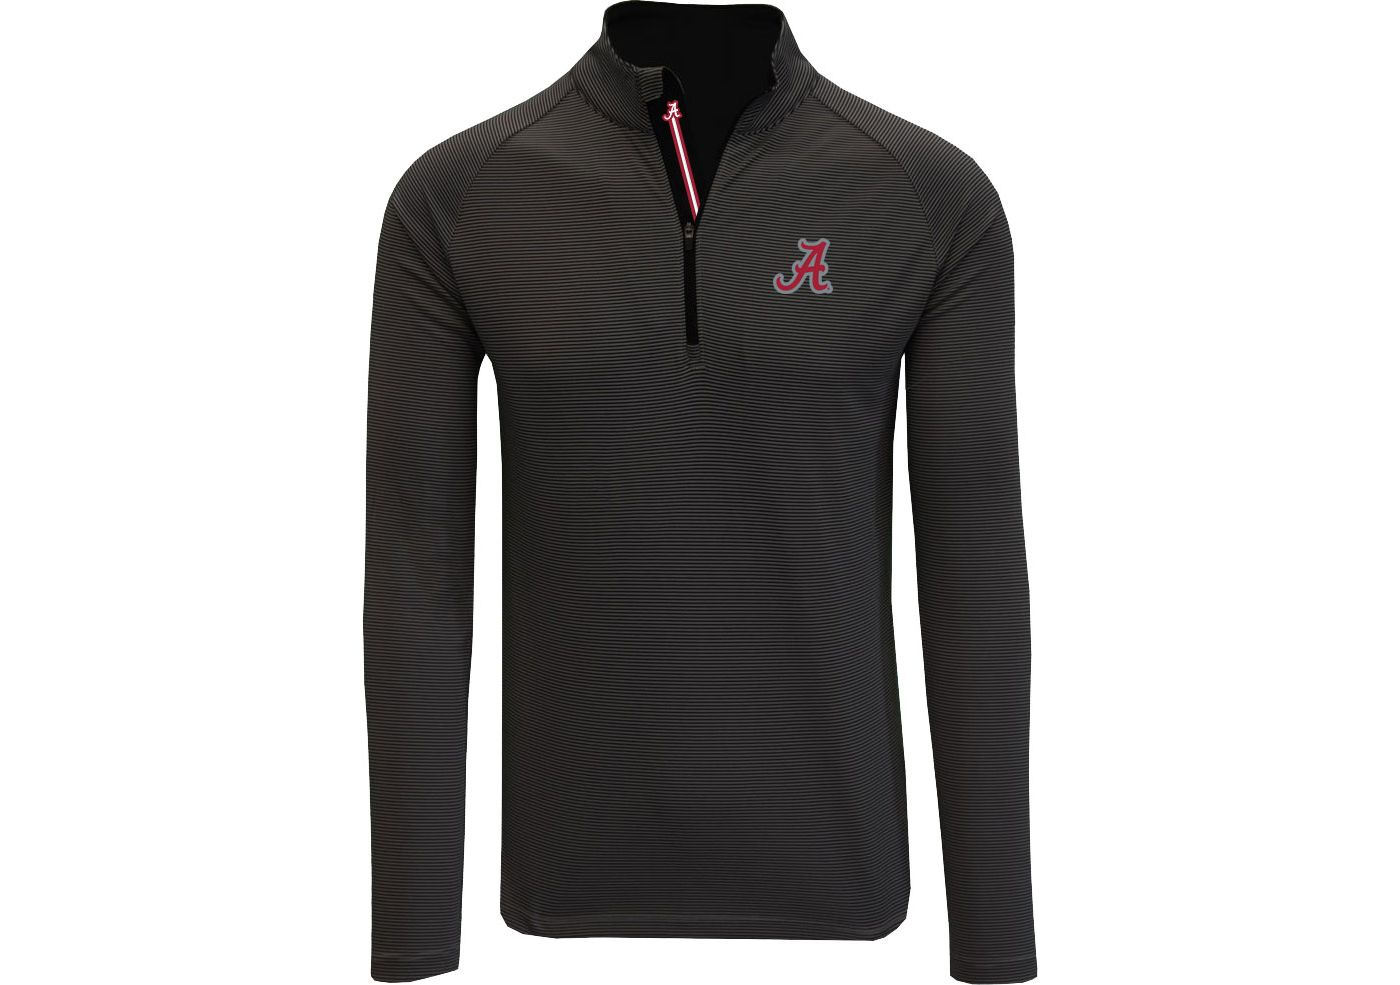 Levelwear Men's Alabama Crimson Tide Orion Quarter-Zip Black Shirt